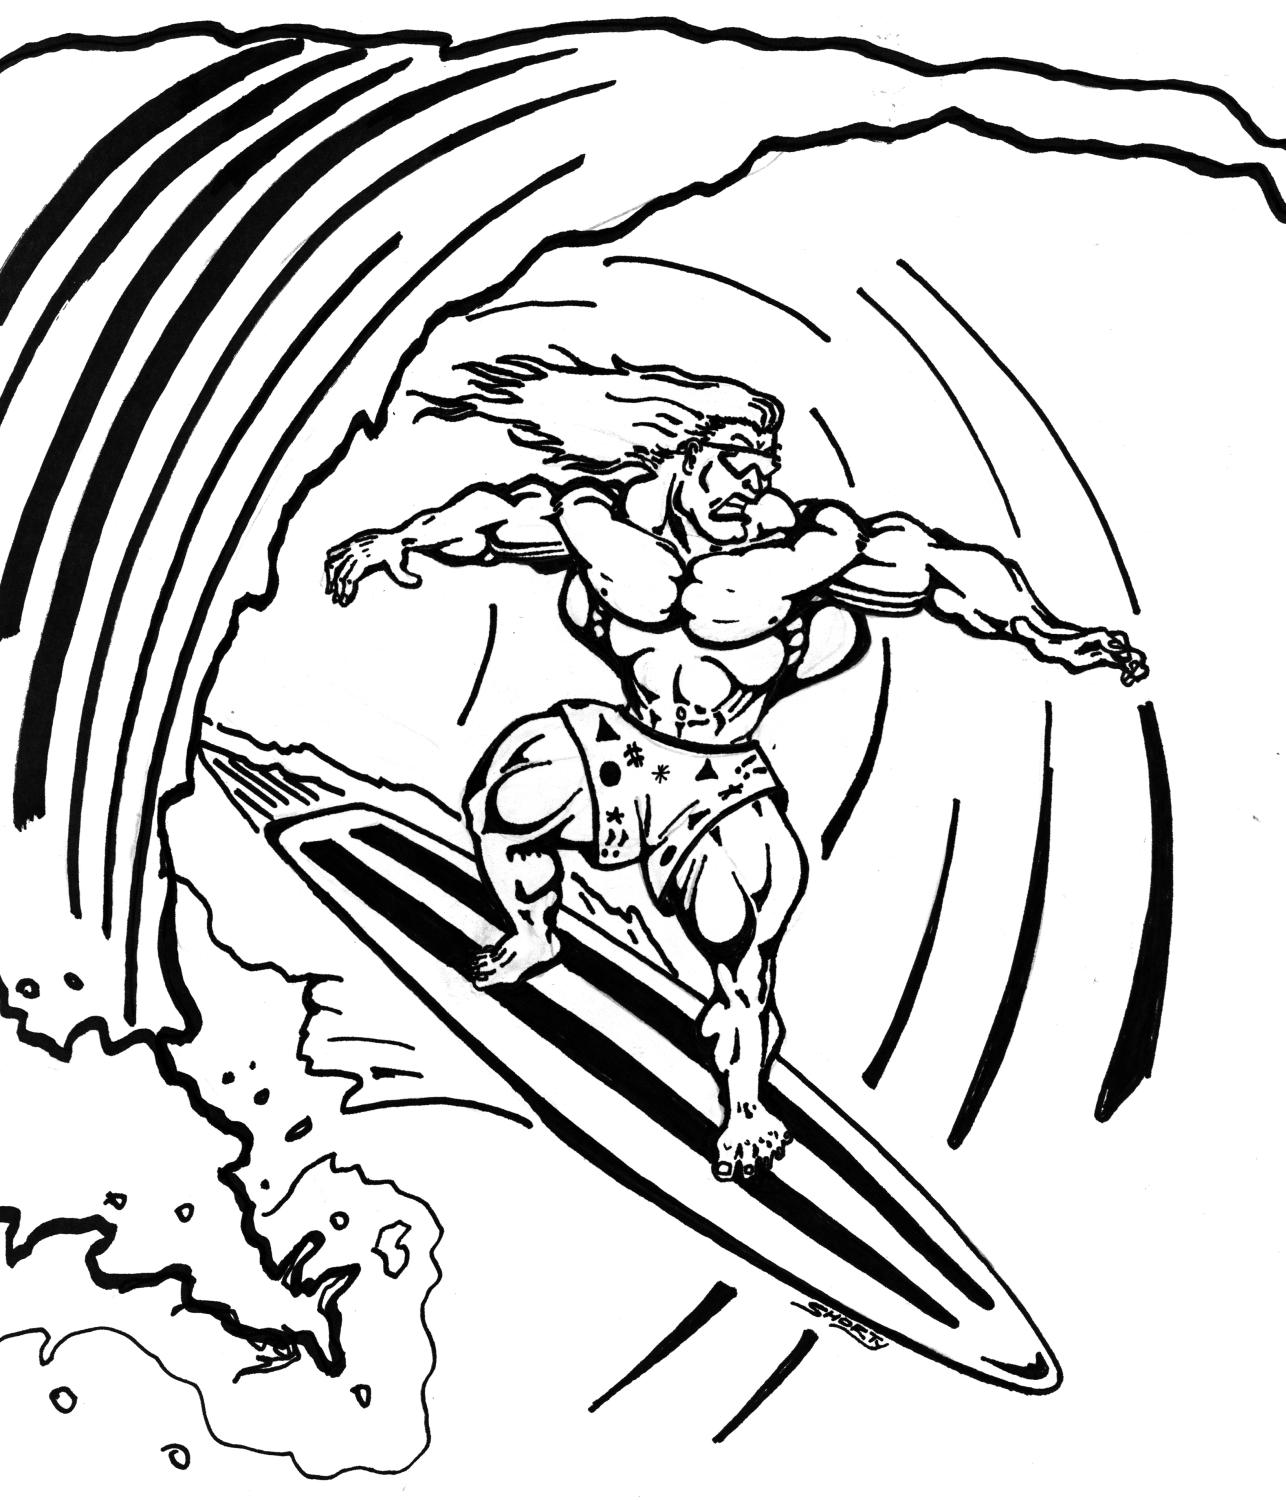 coloring pictures of surfboards surfboard coloring sheet xyzcoloring surfboards coloring of pictures